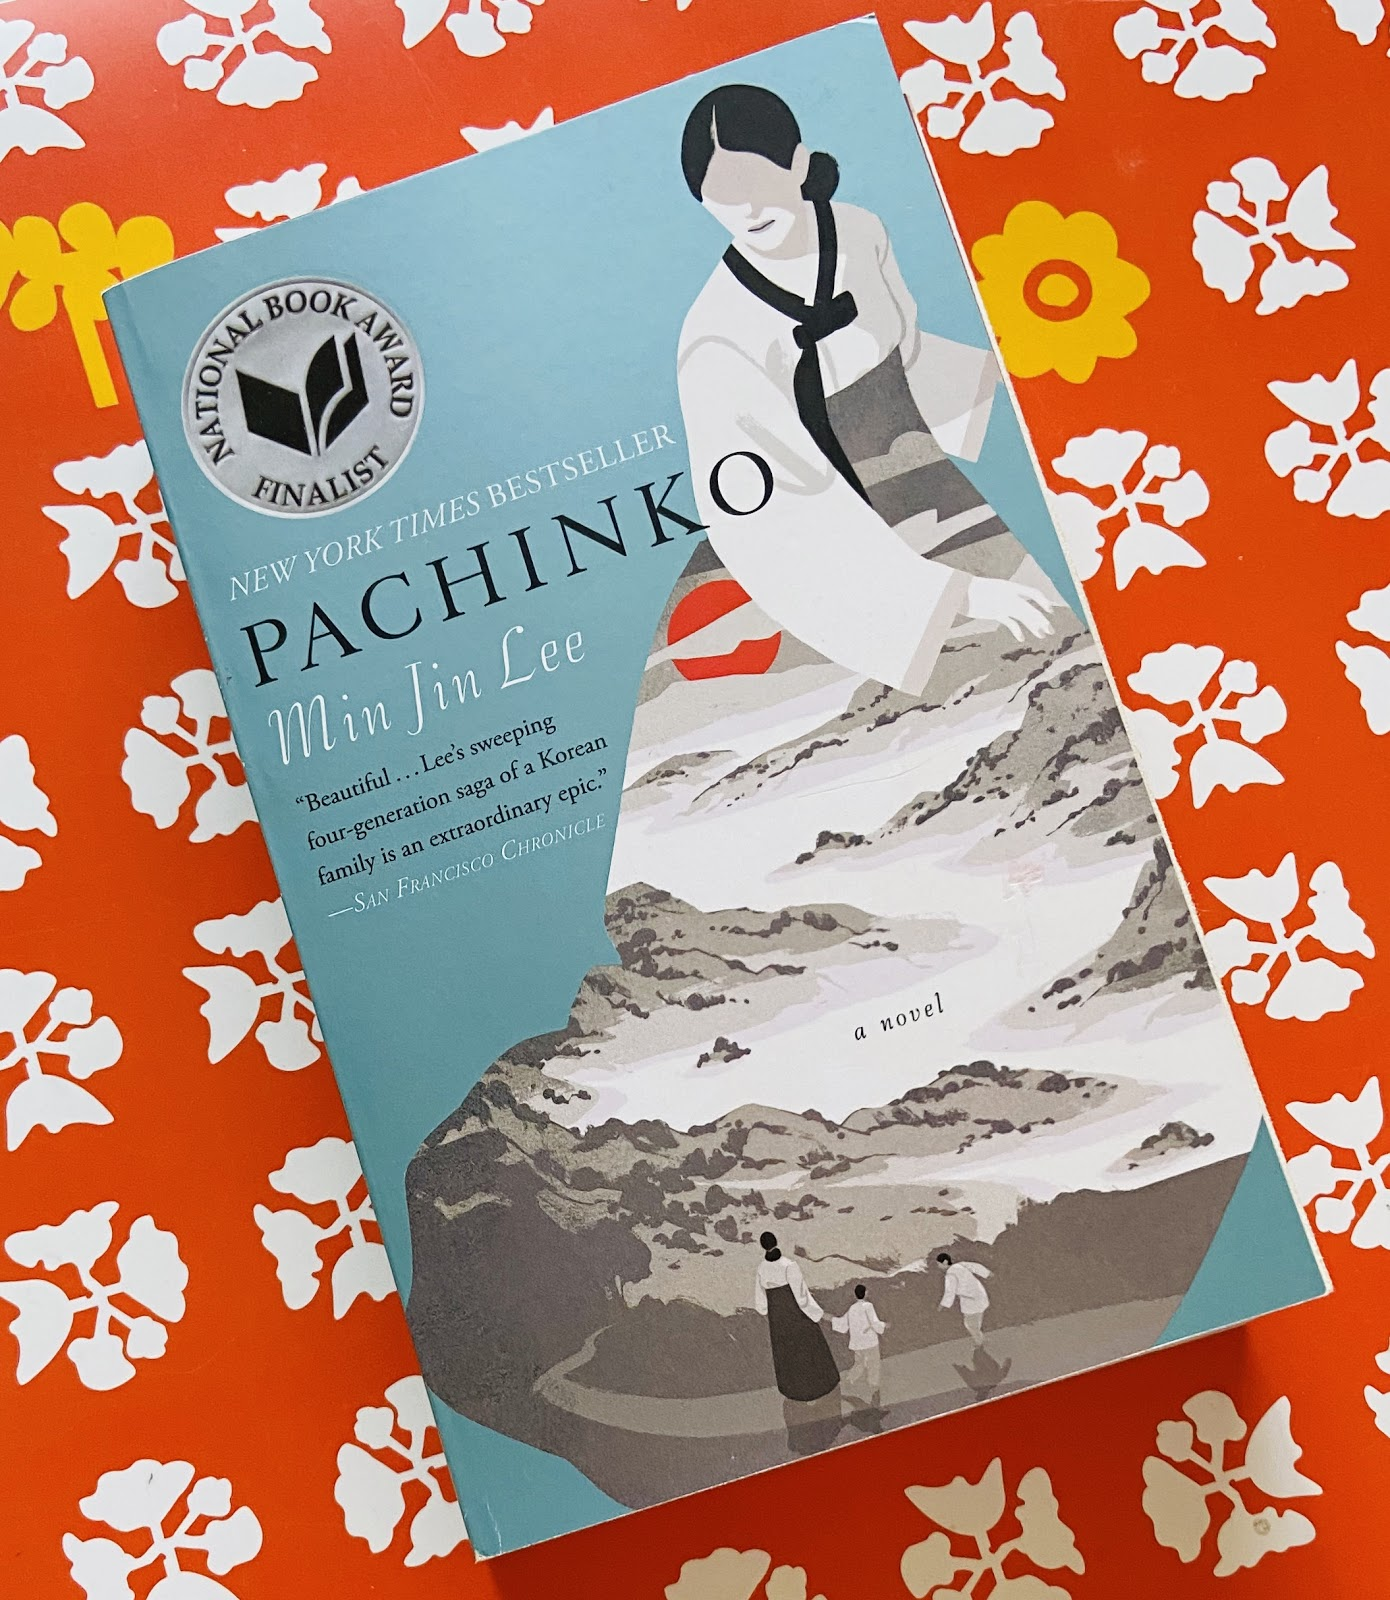 Taking a study break with a good book. Pictured: Pachinko by Min Jin Lee.